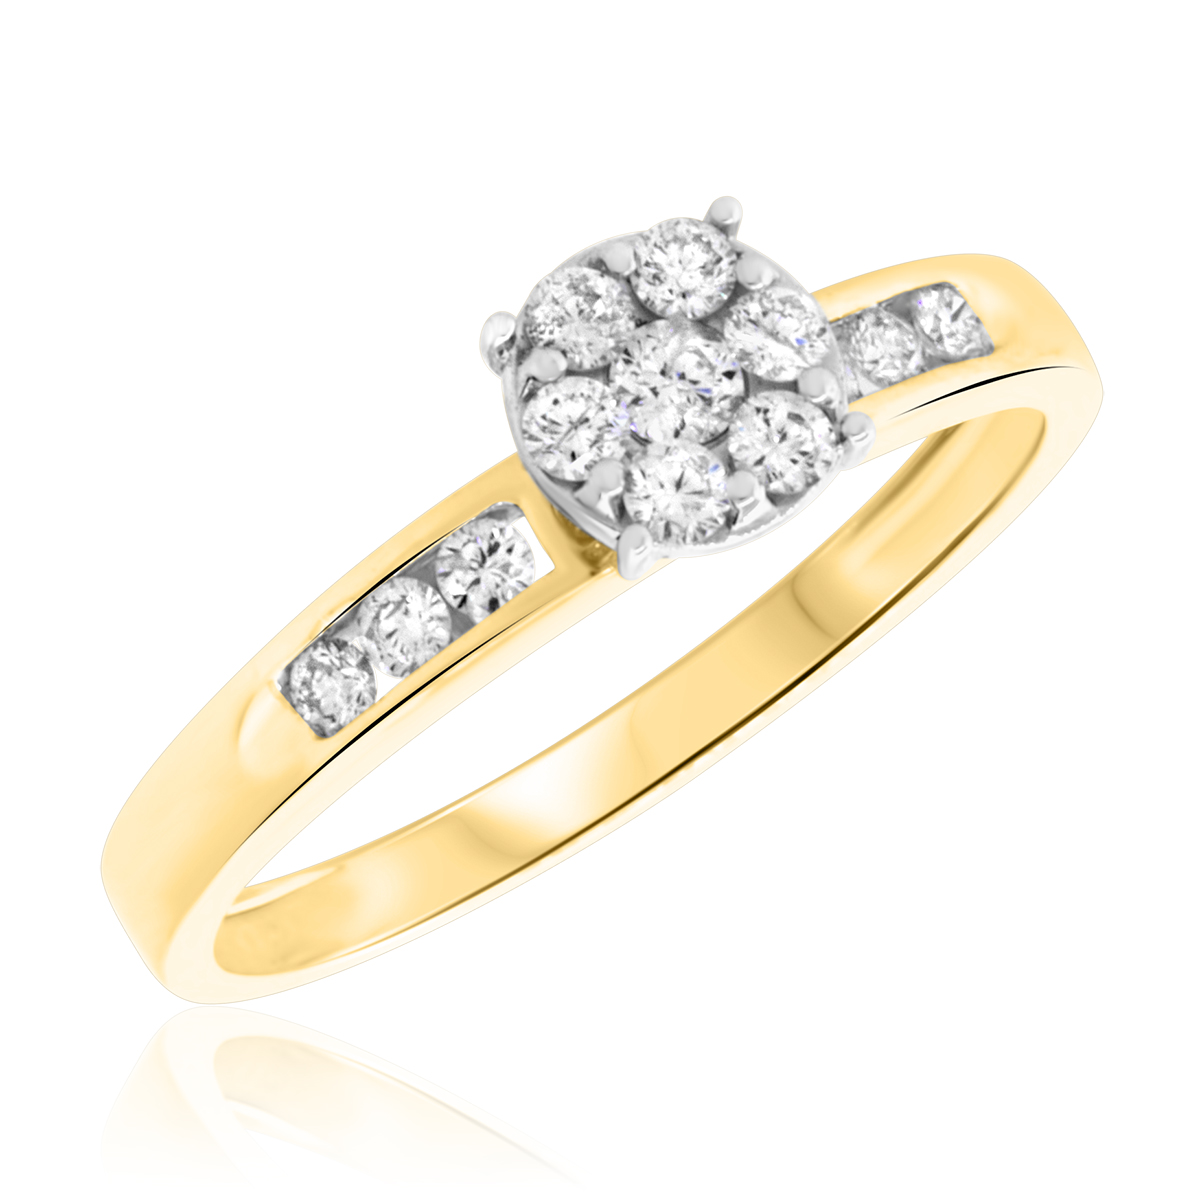 33 Carat Diamond Wedding Band In 14k Yellow Gold